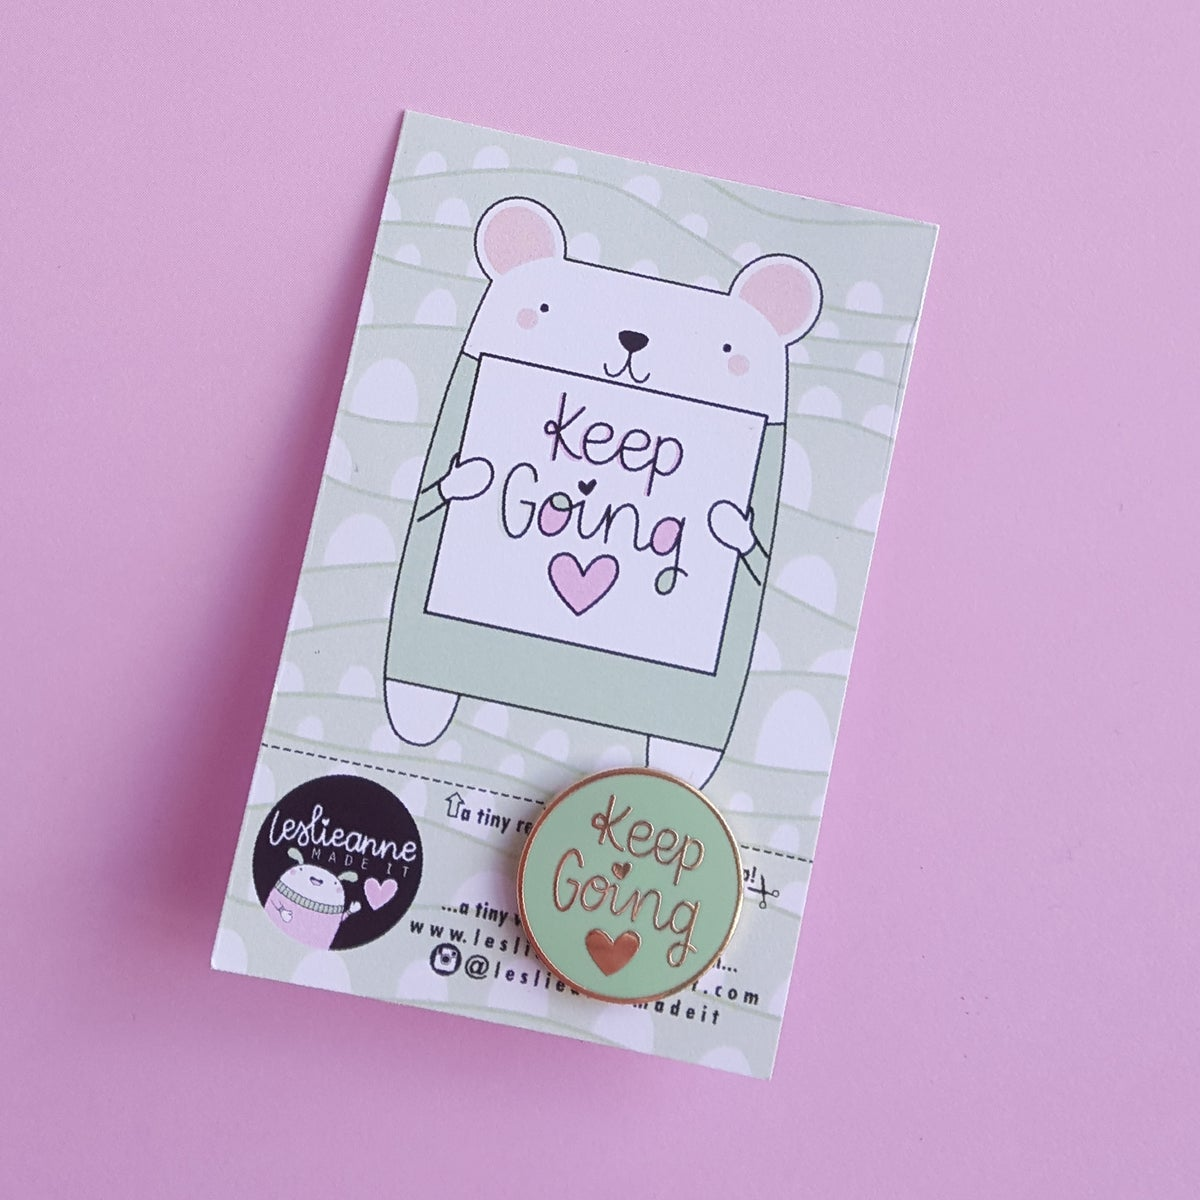 Keep Going : Mint Green Hard Enamel Pin